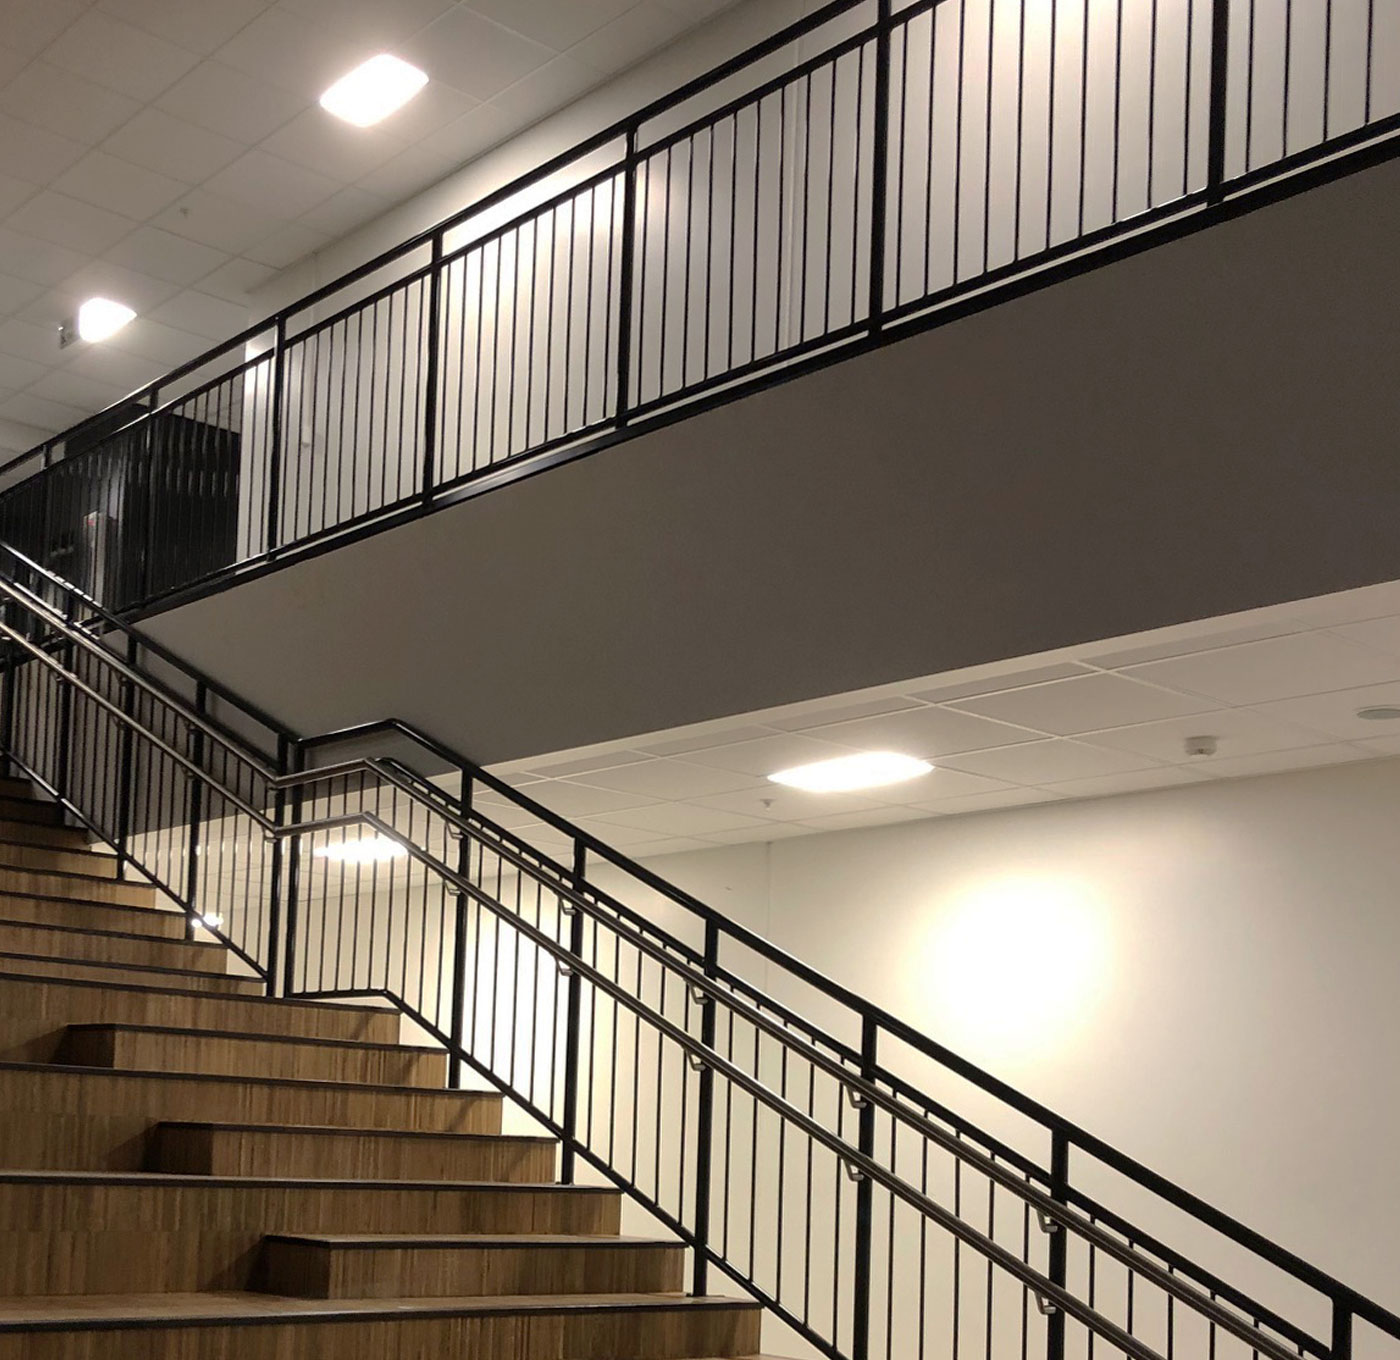 Powder coated childsafe railing with stainless inner handrail